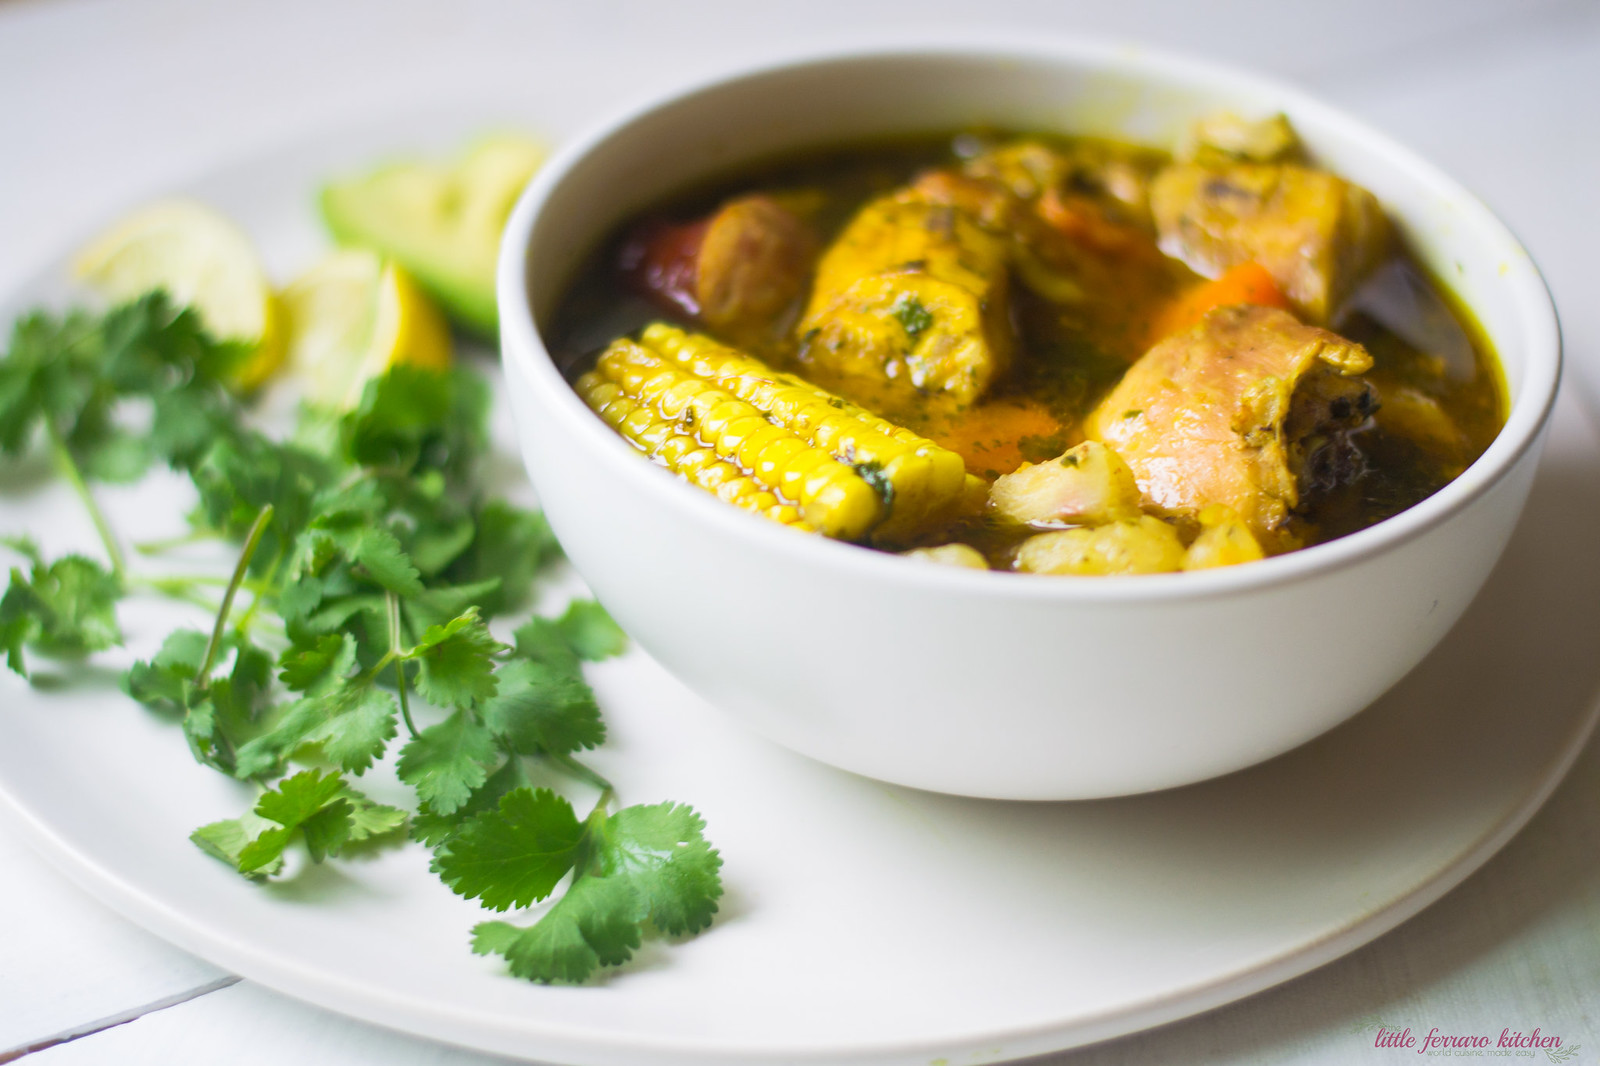 Serve sancocho recipe with lime and sliced avocado.